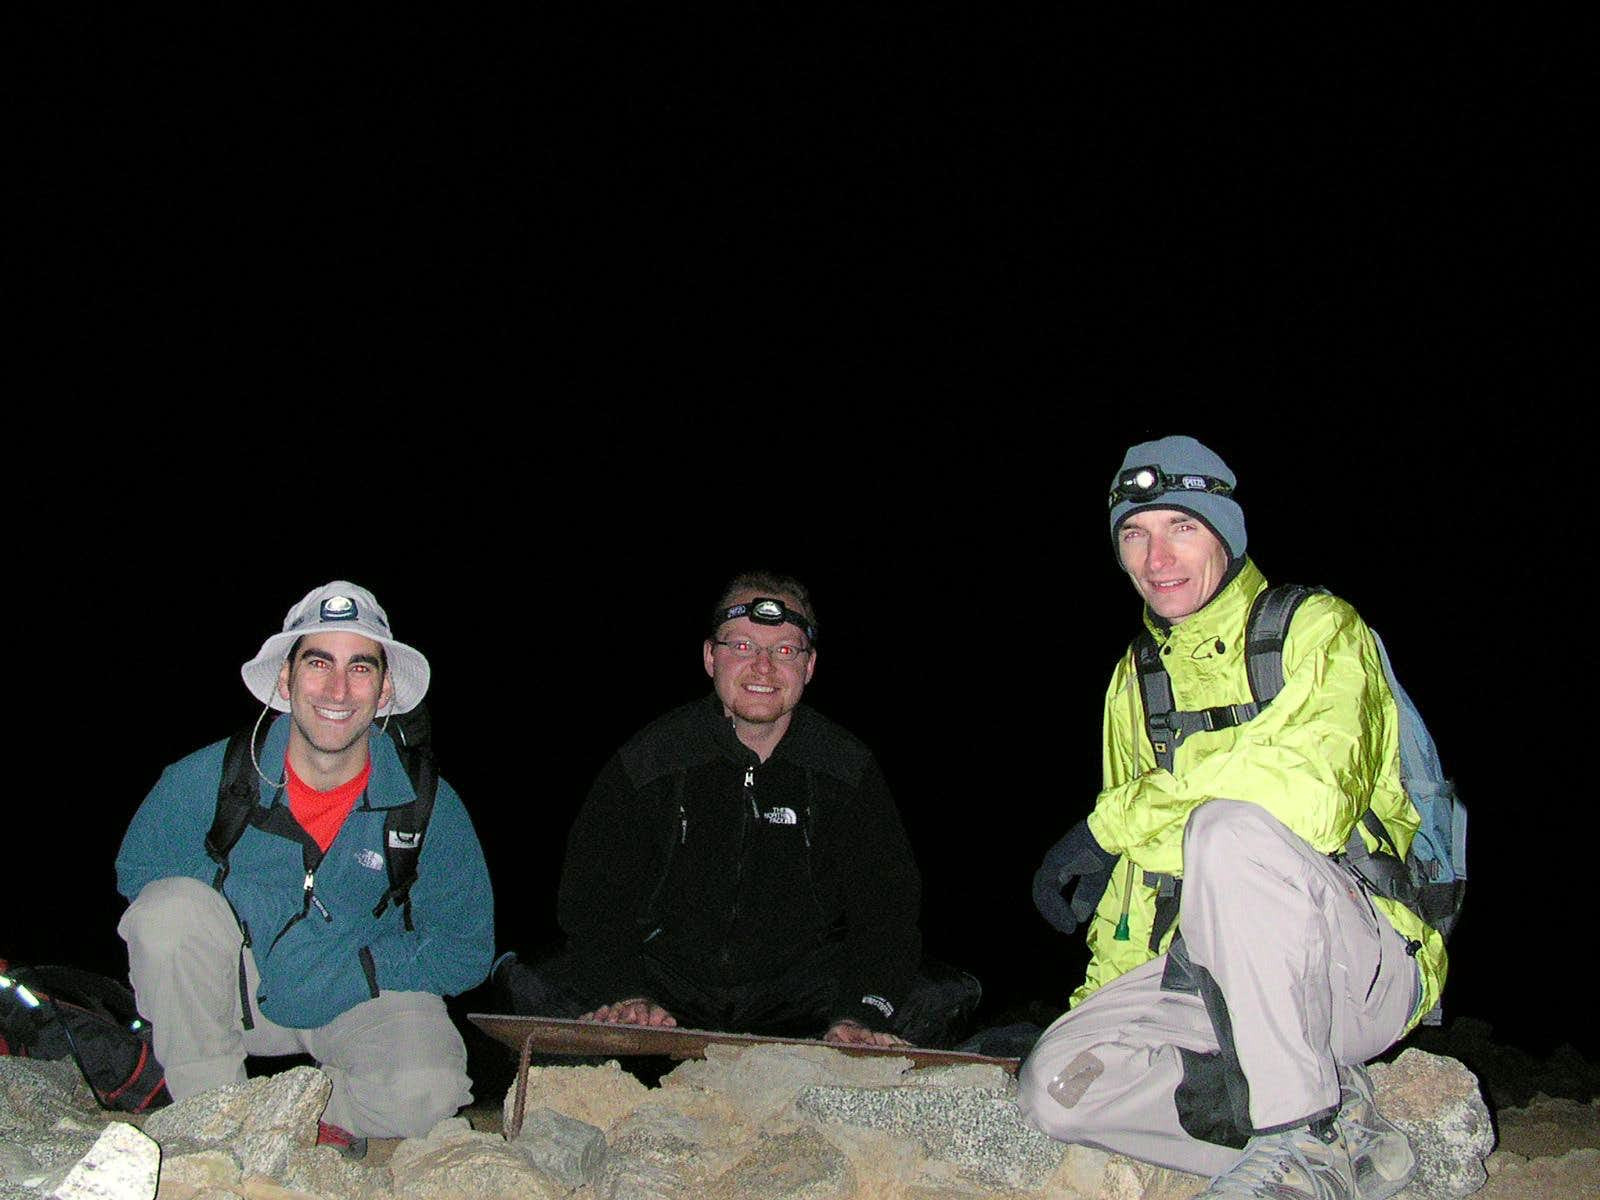 Baldy night hike - An SP get-together